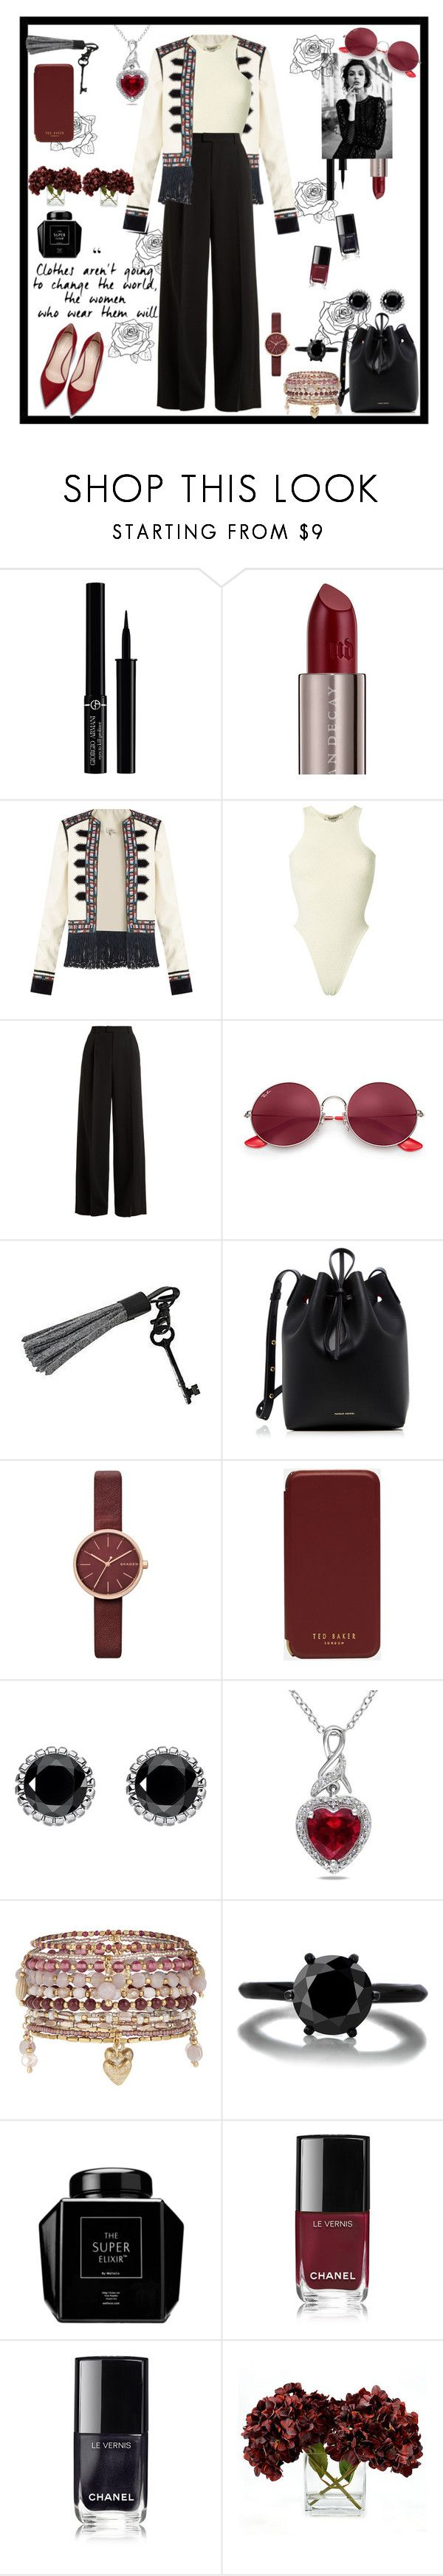 """Untitled #106"" by thea0666 ❤ liked on Polyvore featuring Giorgio Armani, Urban Decay, Talitha, Yeezy by Kanye West, RED Valentino, Ray-Ban, Mansur Gavriel, Skagen, Ted Baker and Thomas Sabo"